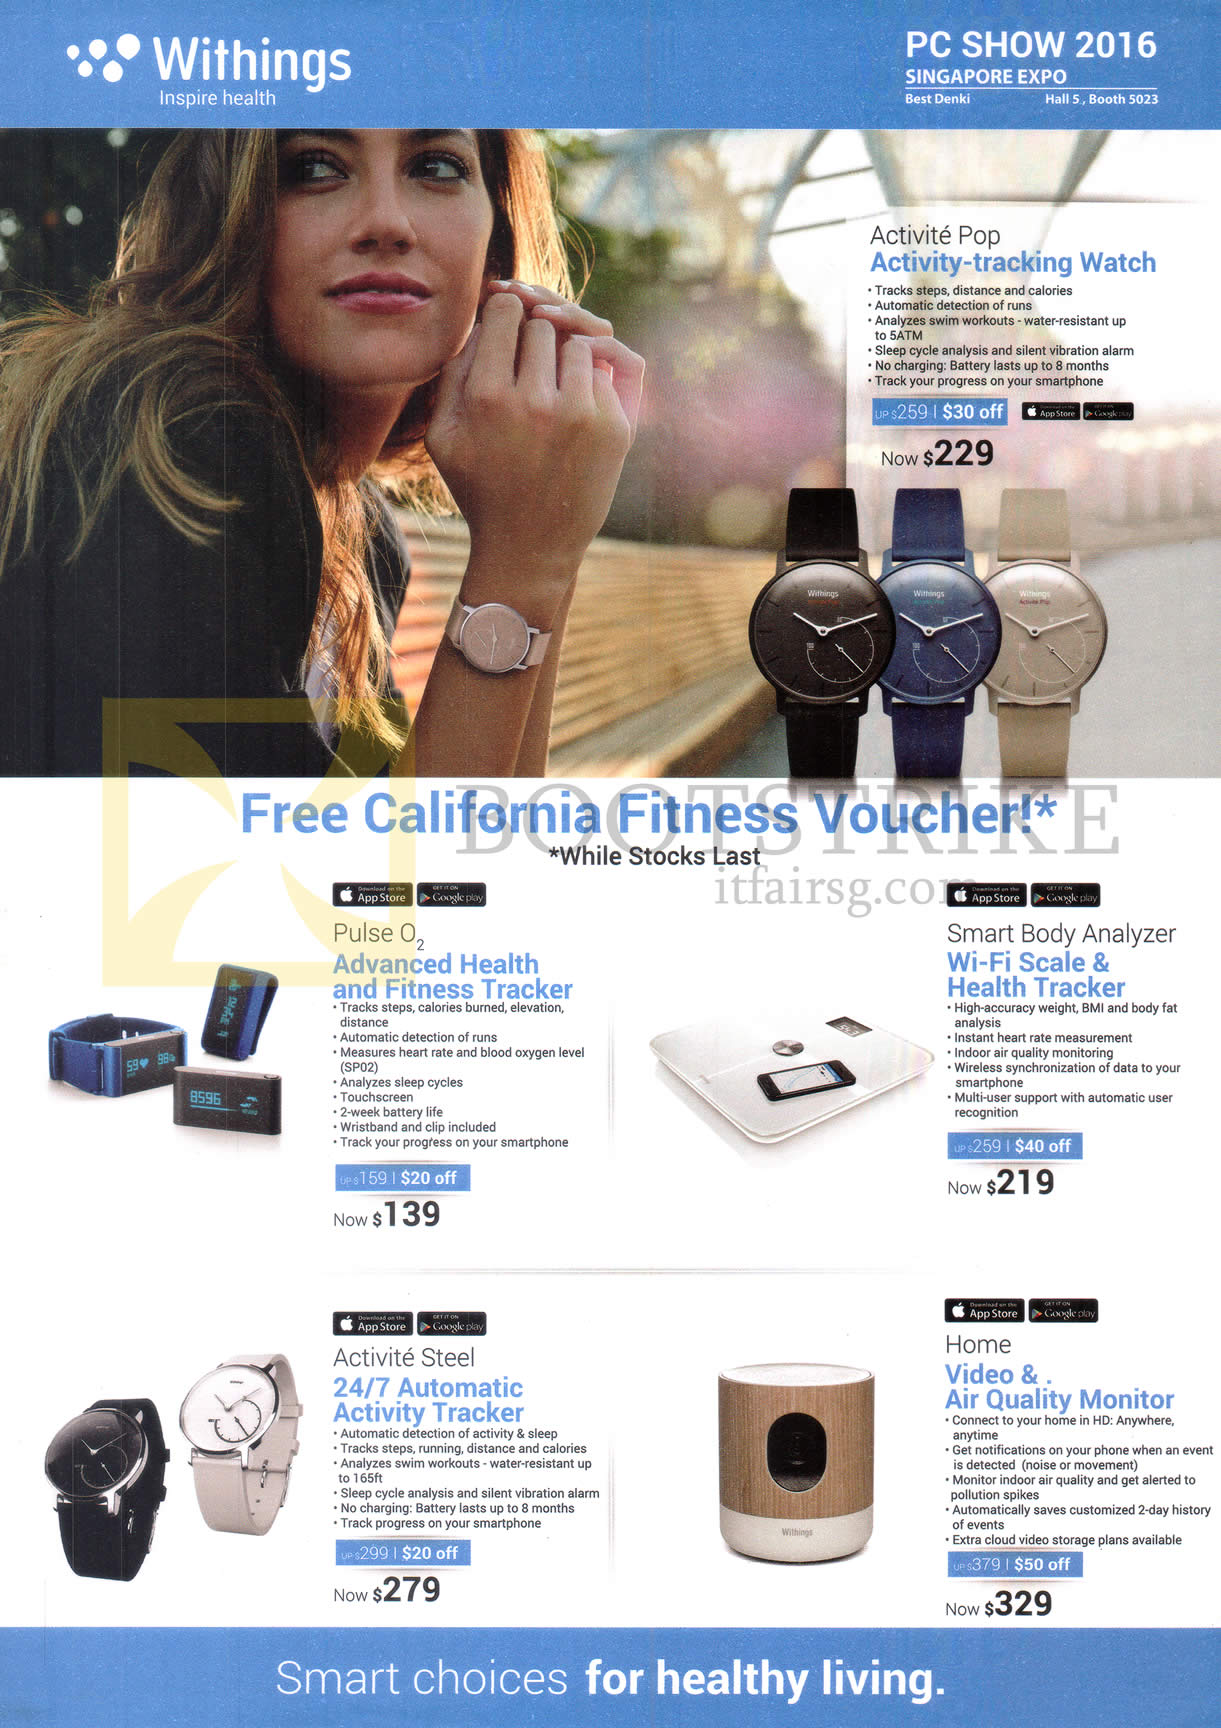 PC SHOW 2016 price list image brochure of Best Demlo Withings Activity Trackers, Scale, Watch, Air Quality Monitor, Activite Pop, Pulse O2, Activite Steel, Smart Body Analyzer, Home